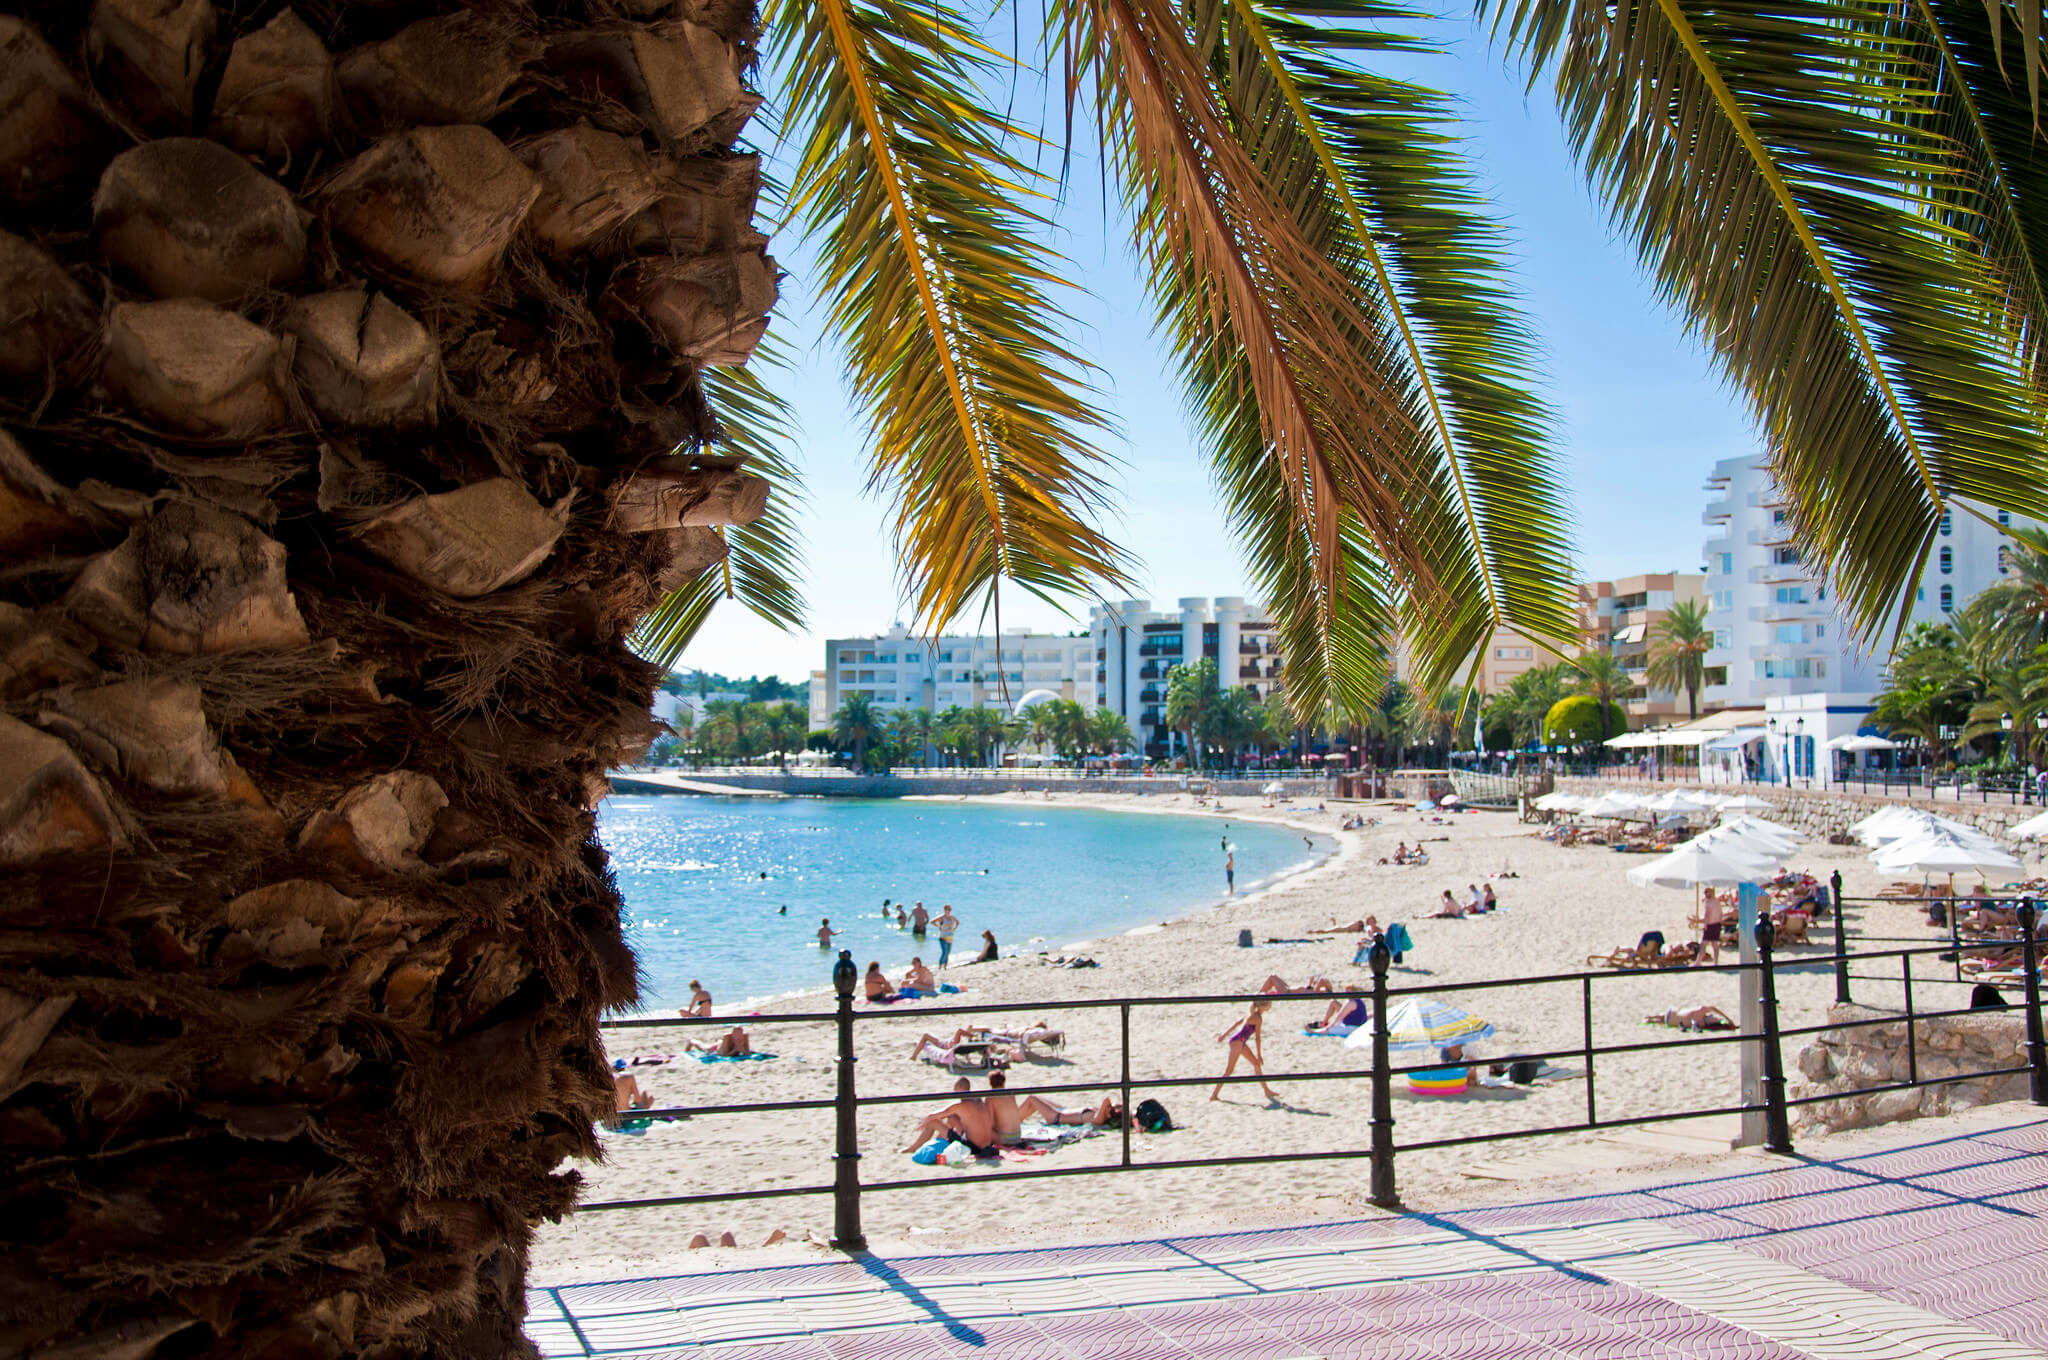 https://www.white-ibiza.com/wp-content/uploads/2020/03/ibiza-beaches-santa-eulalia-01.jpg